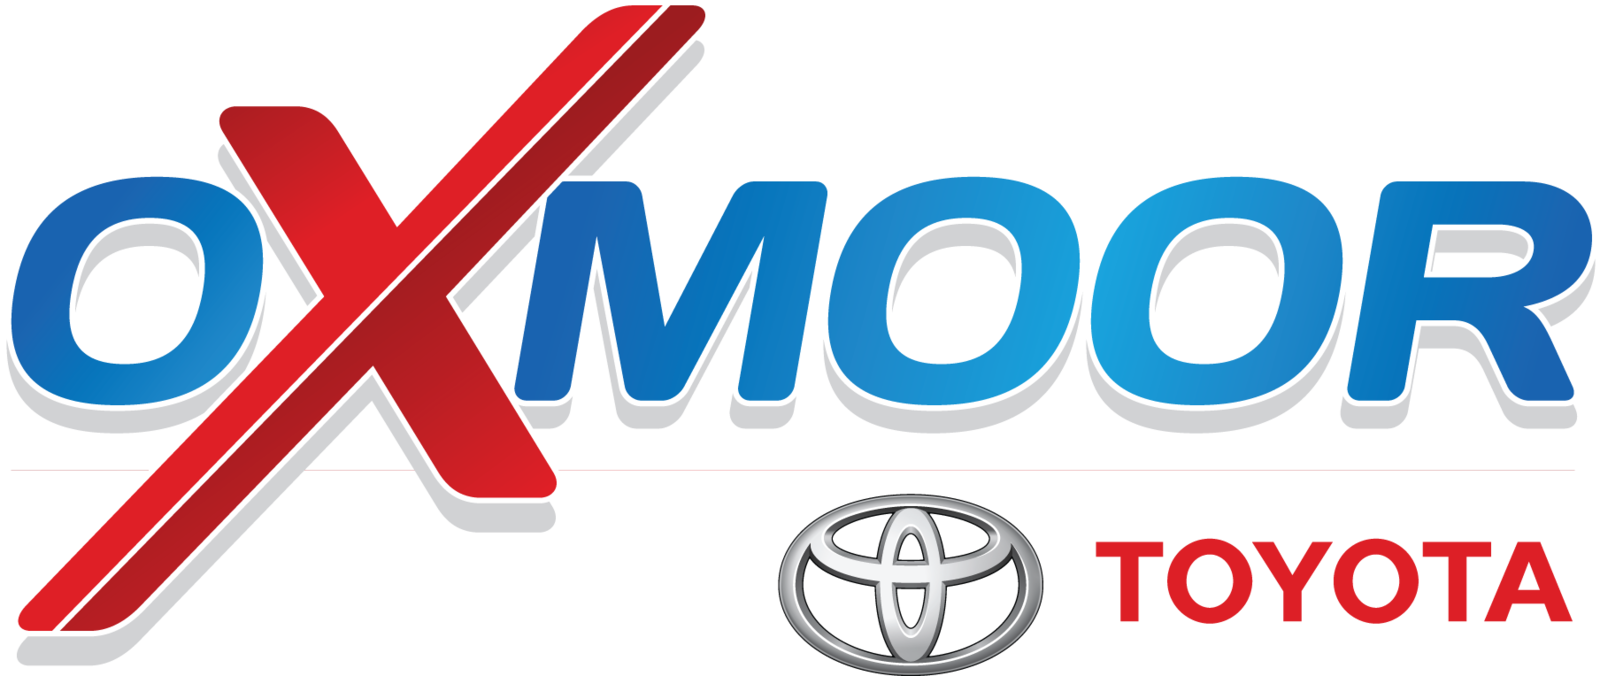 Oxmoor Toyota Service >> Oxmoor Toyota Louisville Ky Read Consumer Reviews Browse Used